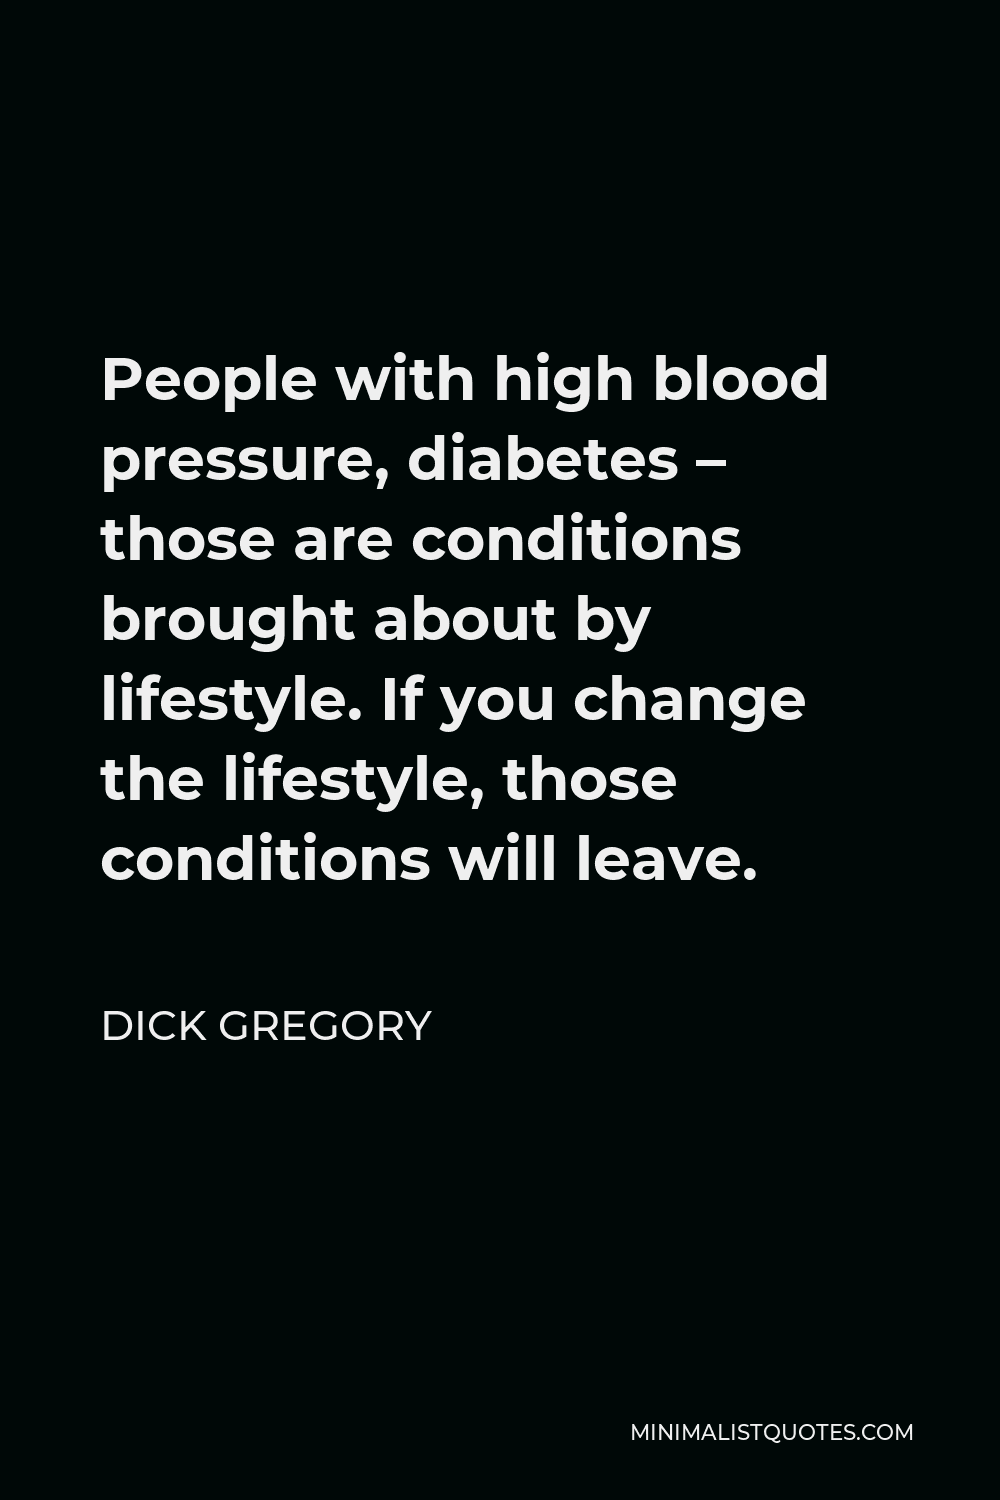 Dick Gregory Quote - People with high blood pressure, diabetes – those are conditions brought about by lifestyle. If you change the lifestyle, those conditions will leave.